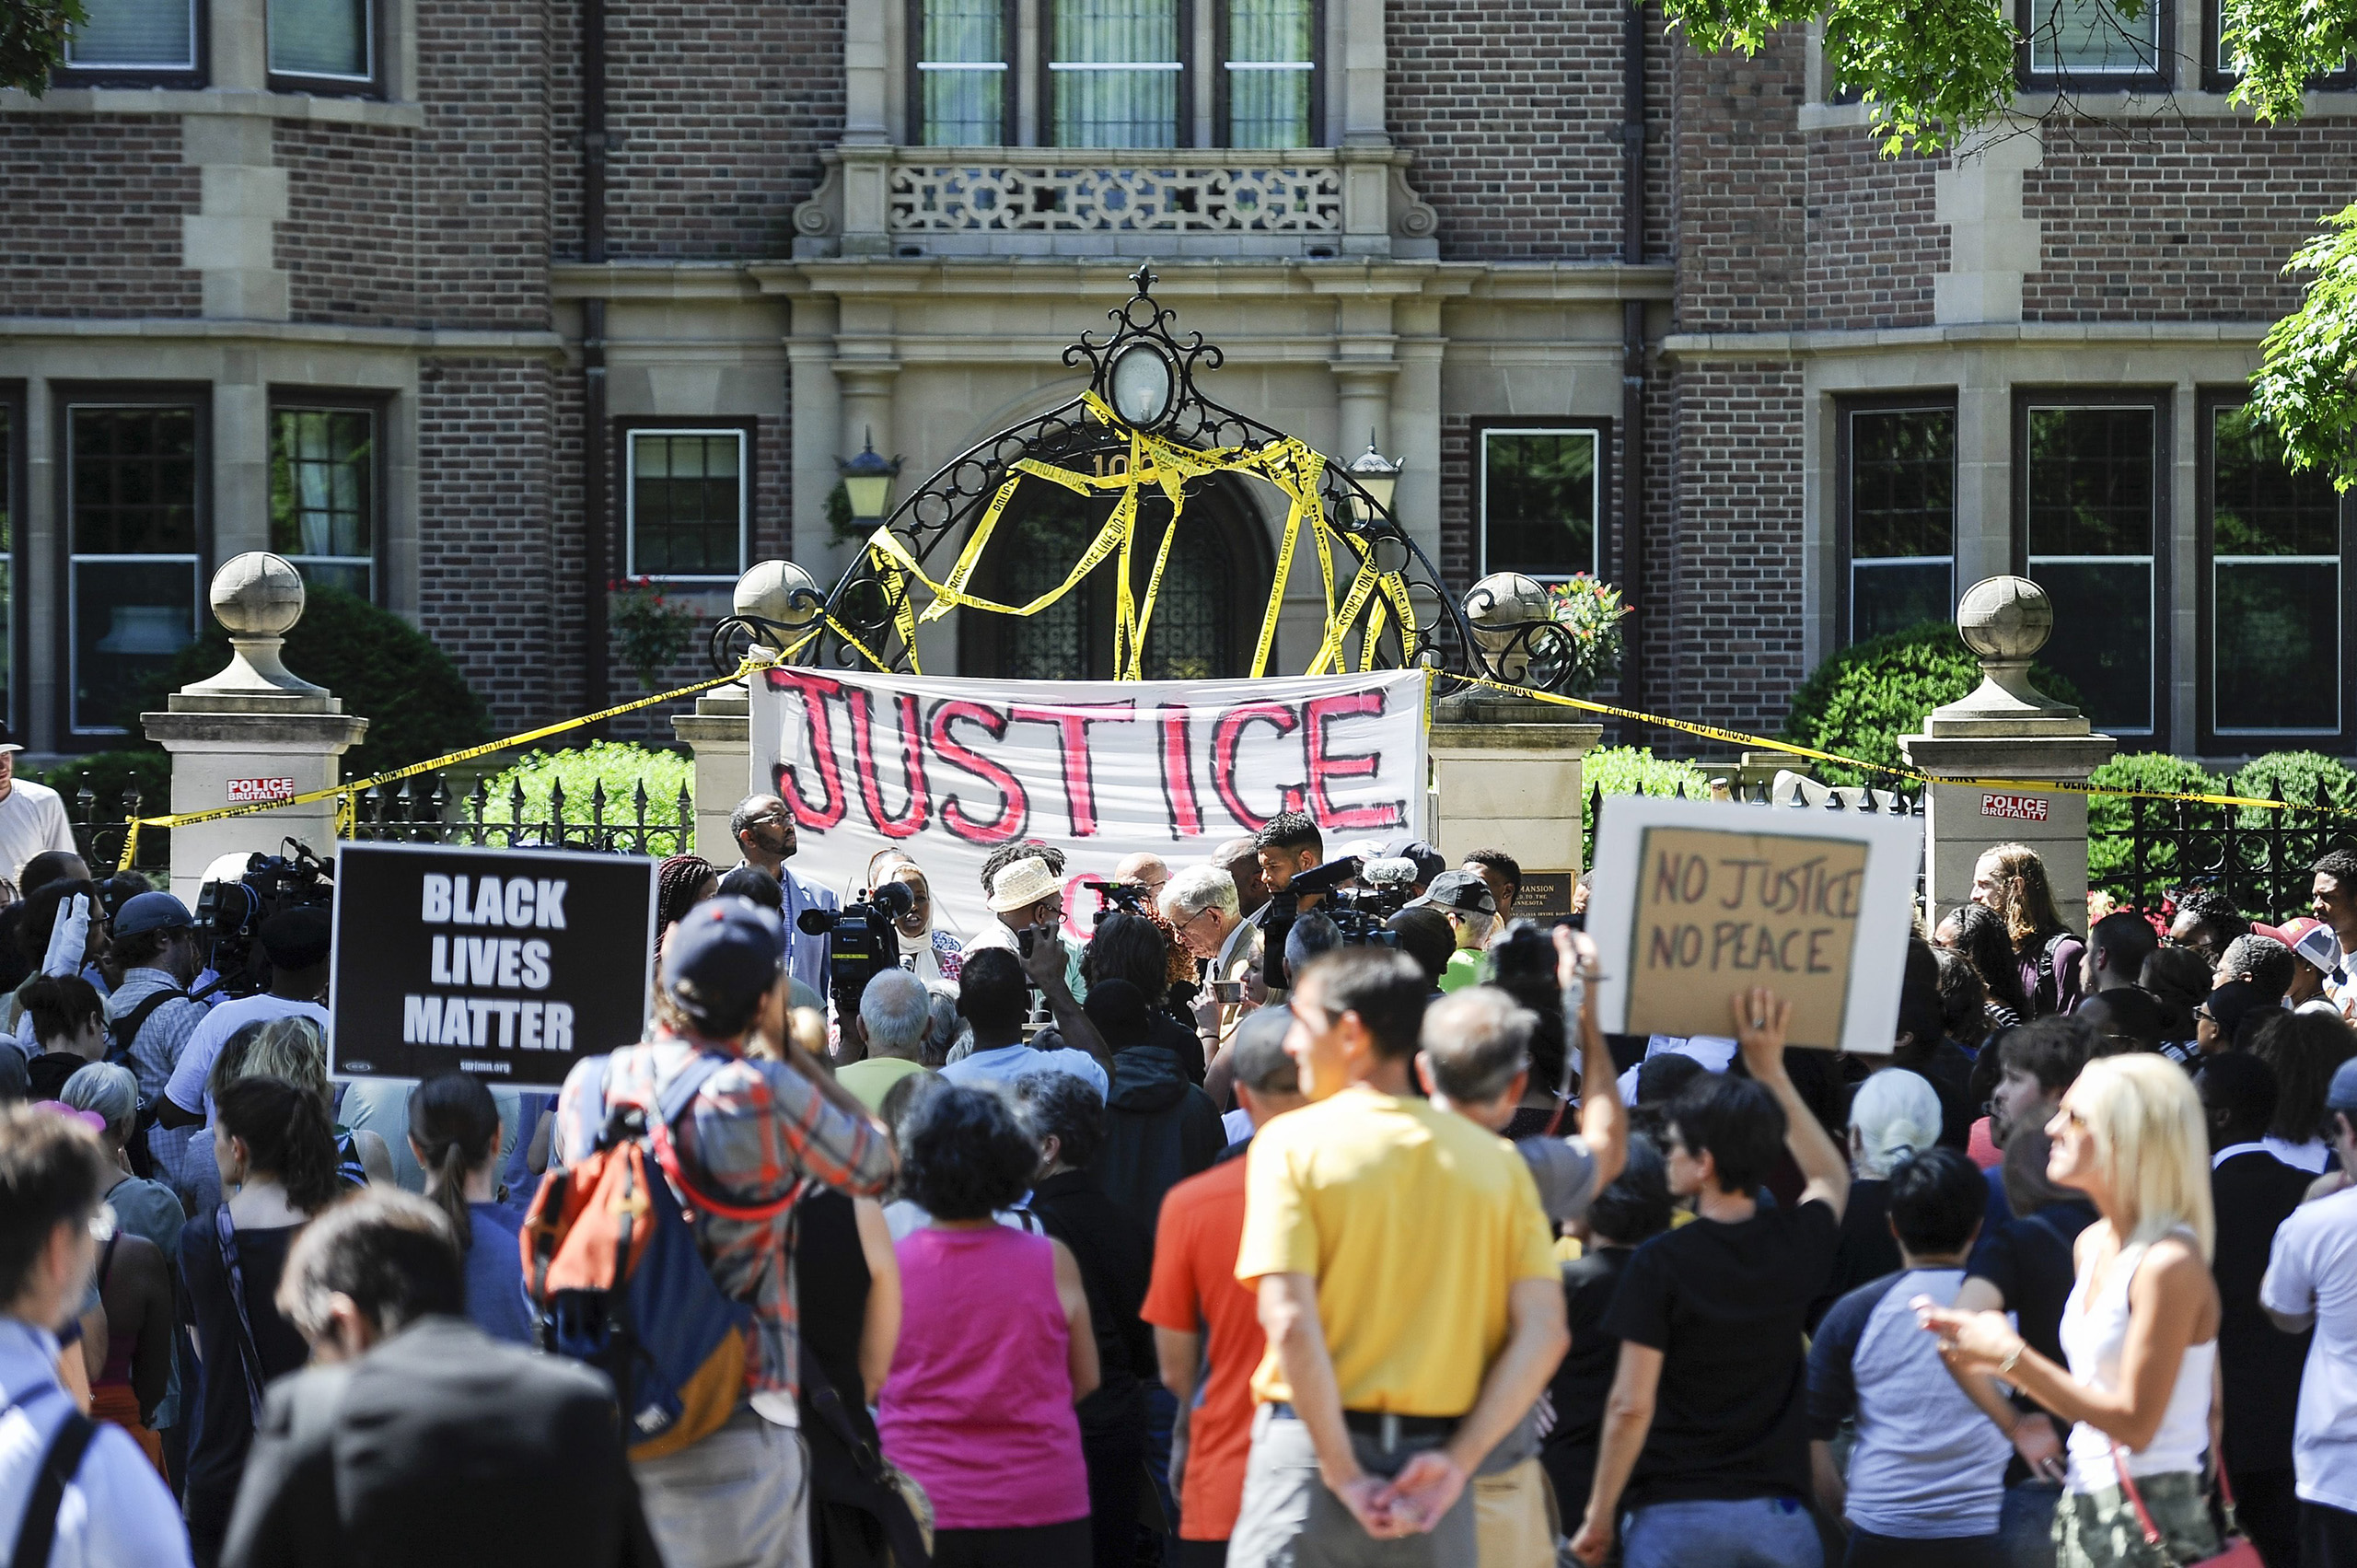 Protesters gather in front of the governor's residence in reaction to the the police shooting of Philando Castile in St. Paul, Minnesota, on July 7, 2016.